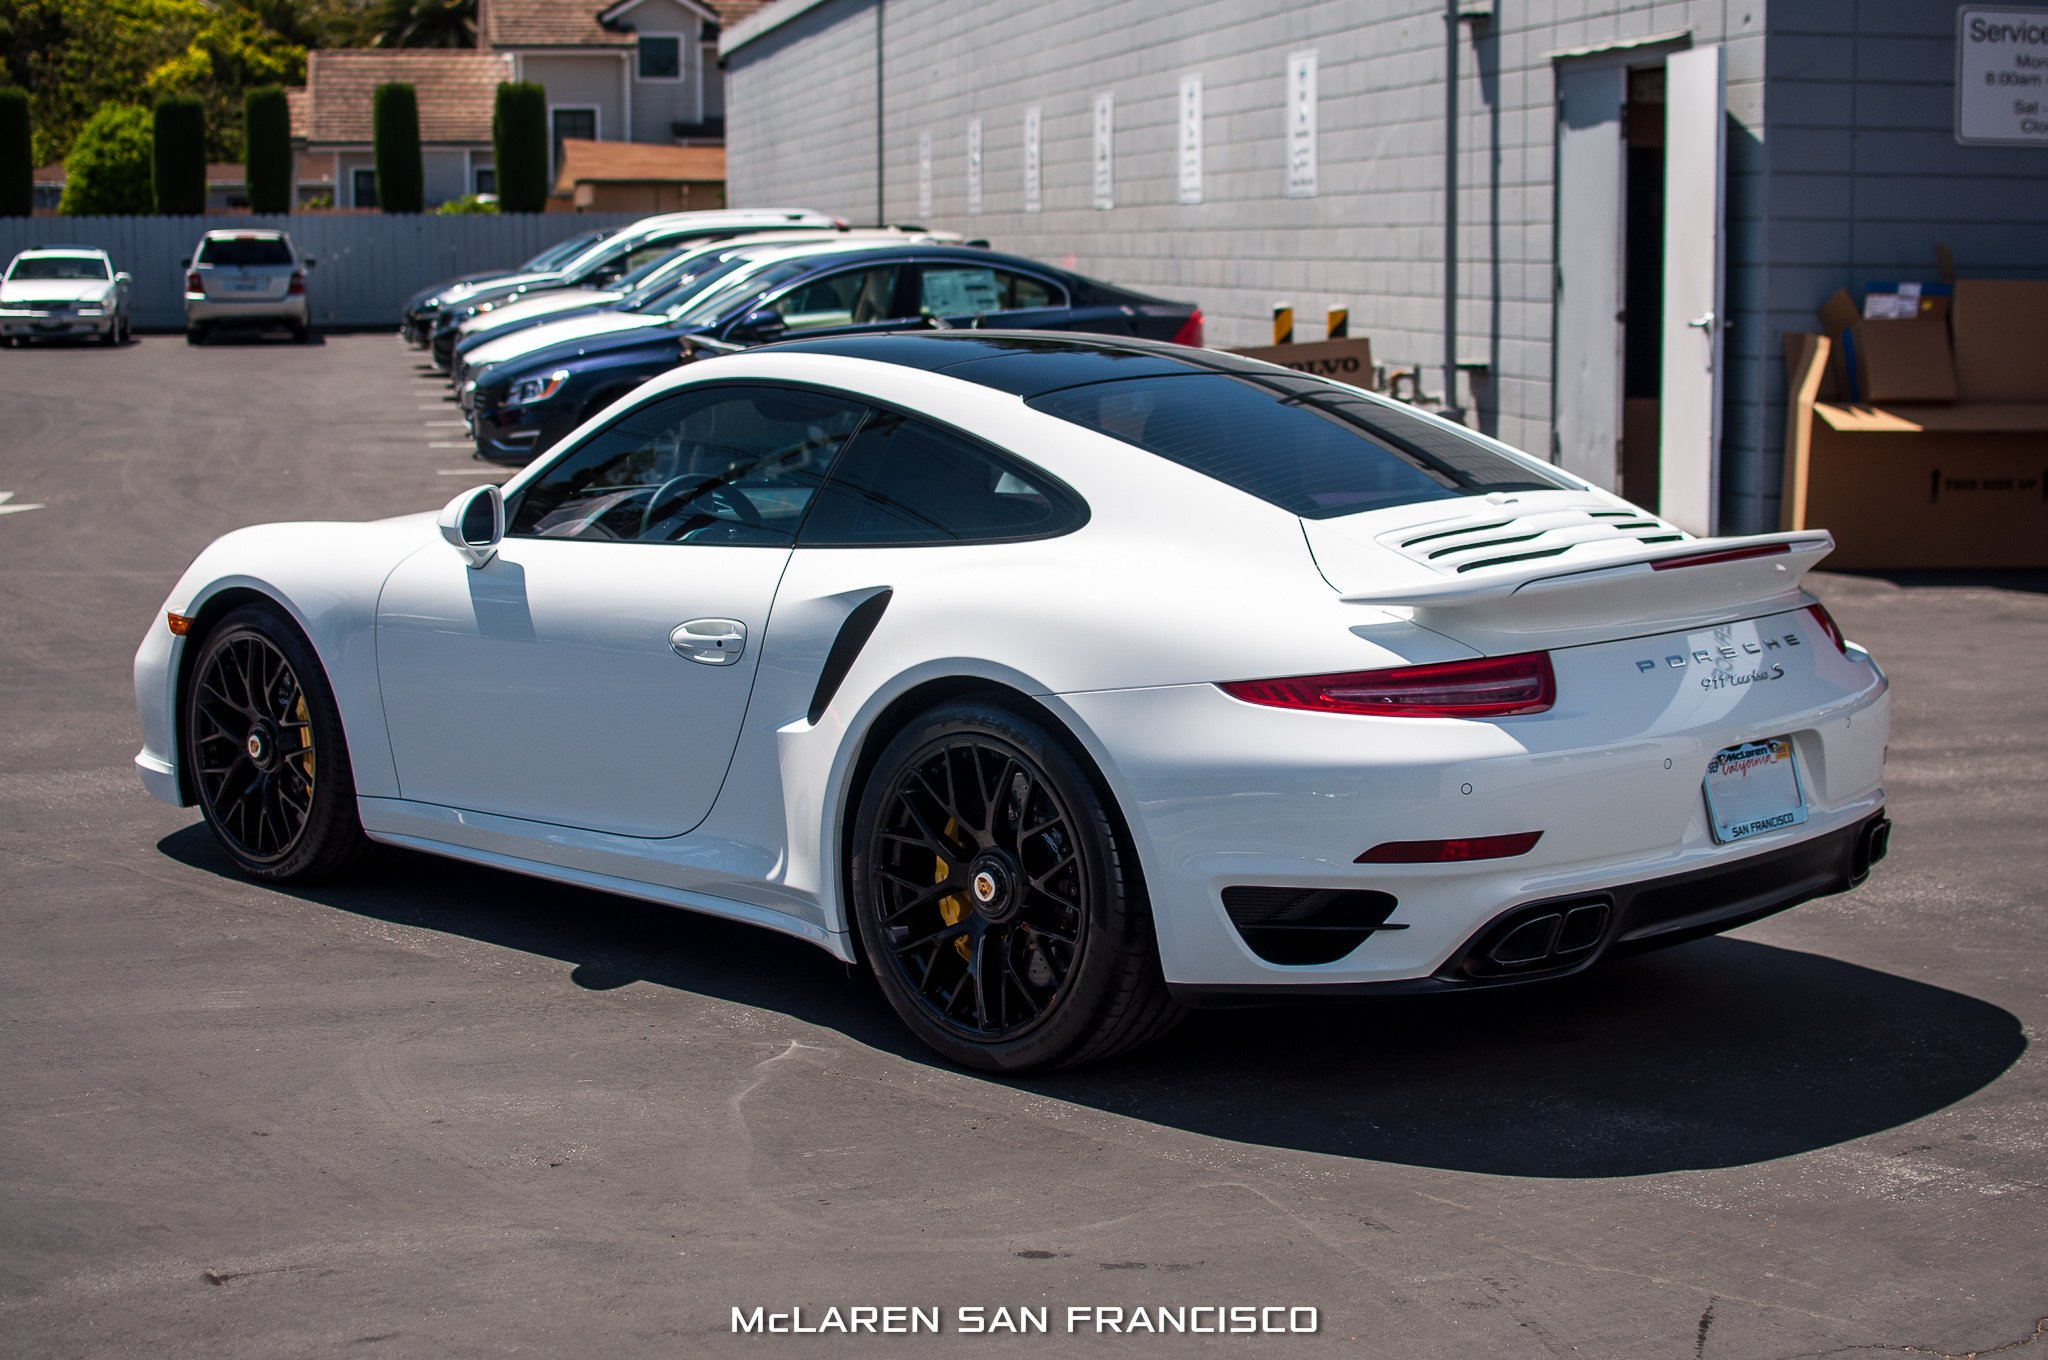 2015 porsche 911 turbo s coupe cars white wallpaper 2048x1360 686524 wallpaperup - 911 Porsche Turbo 2015